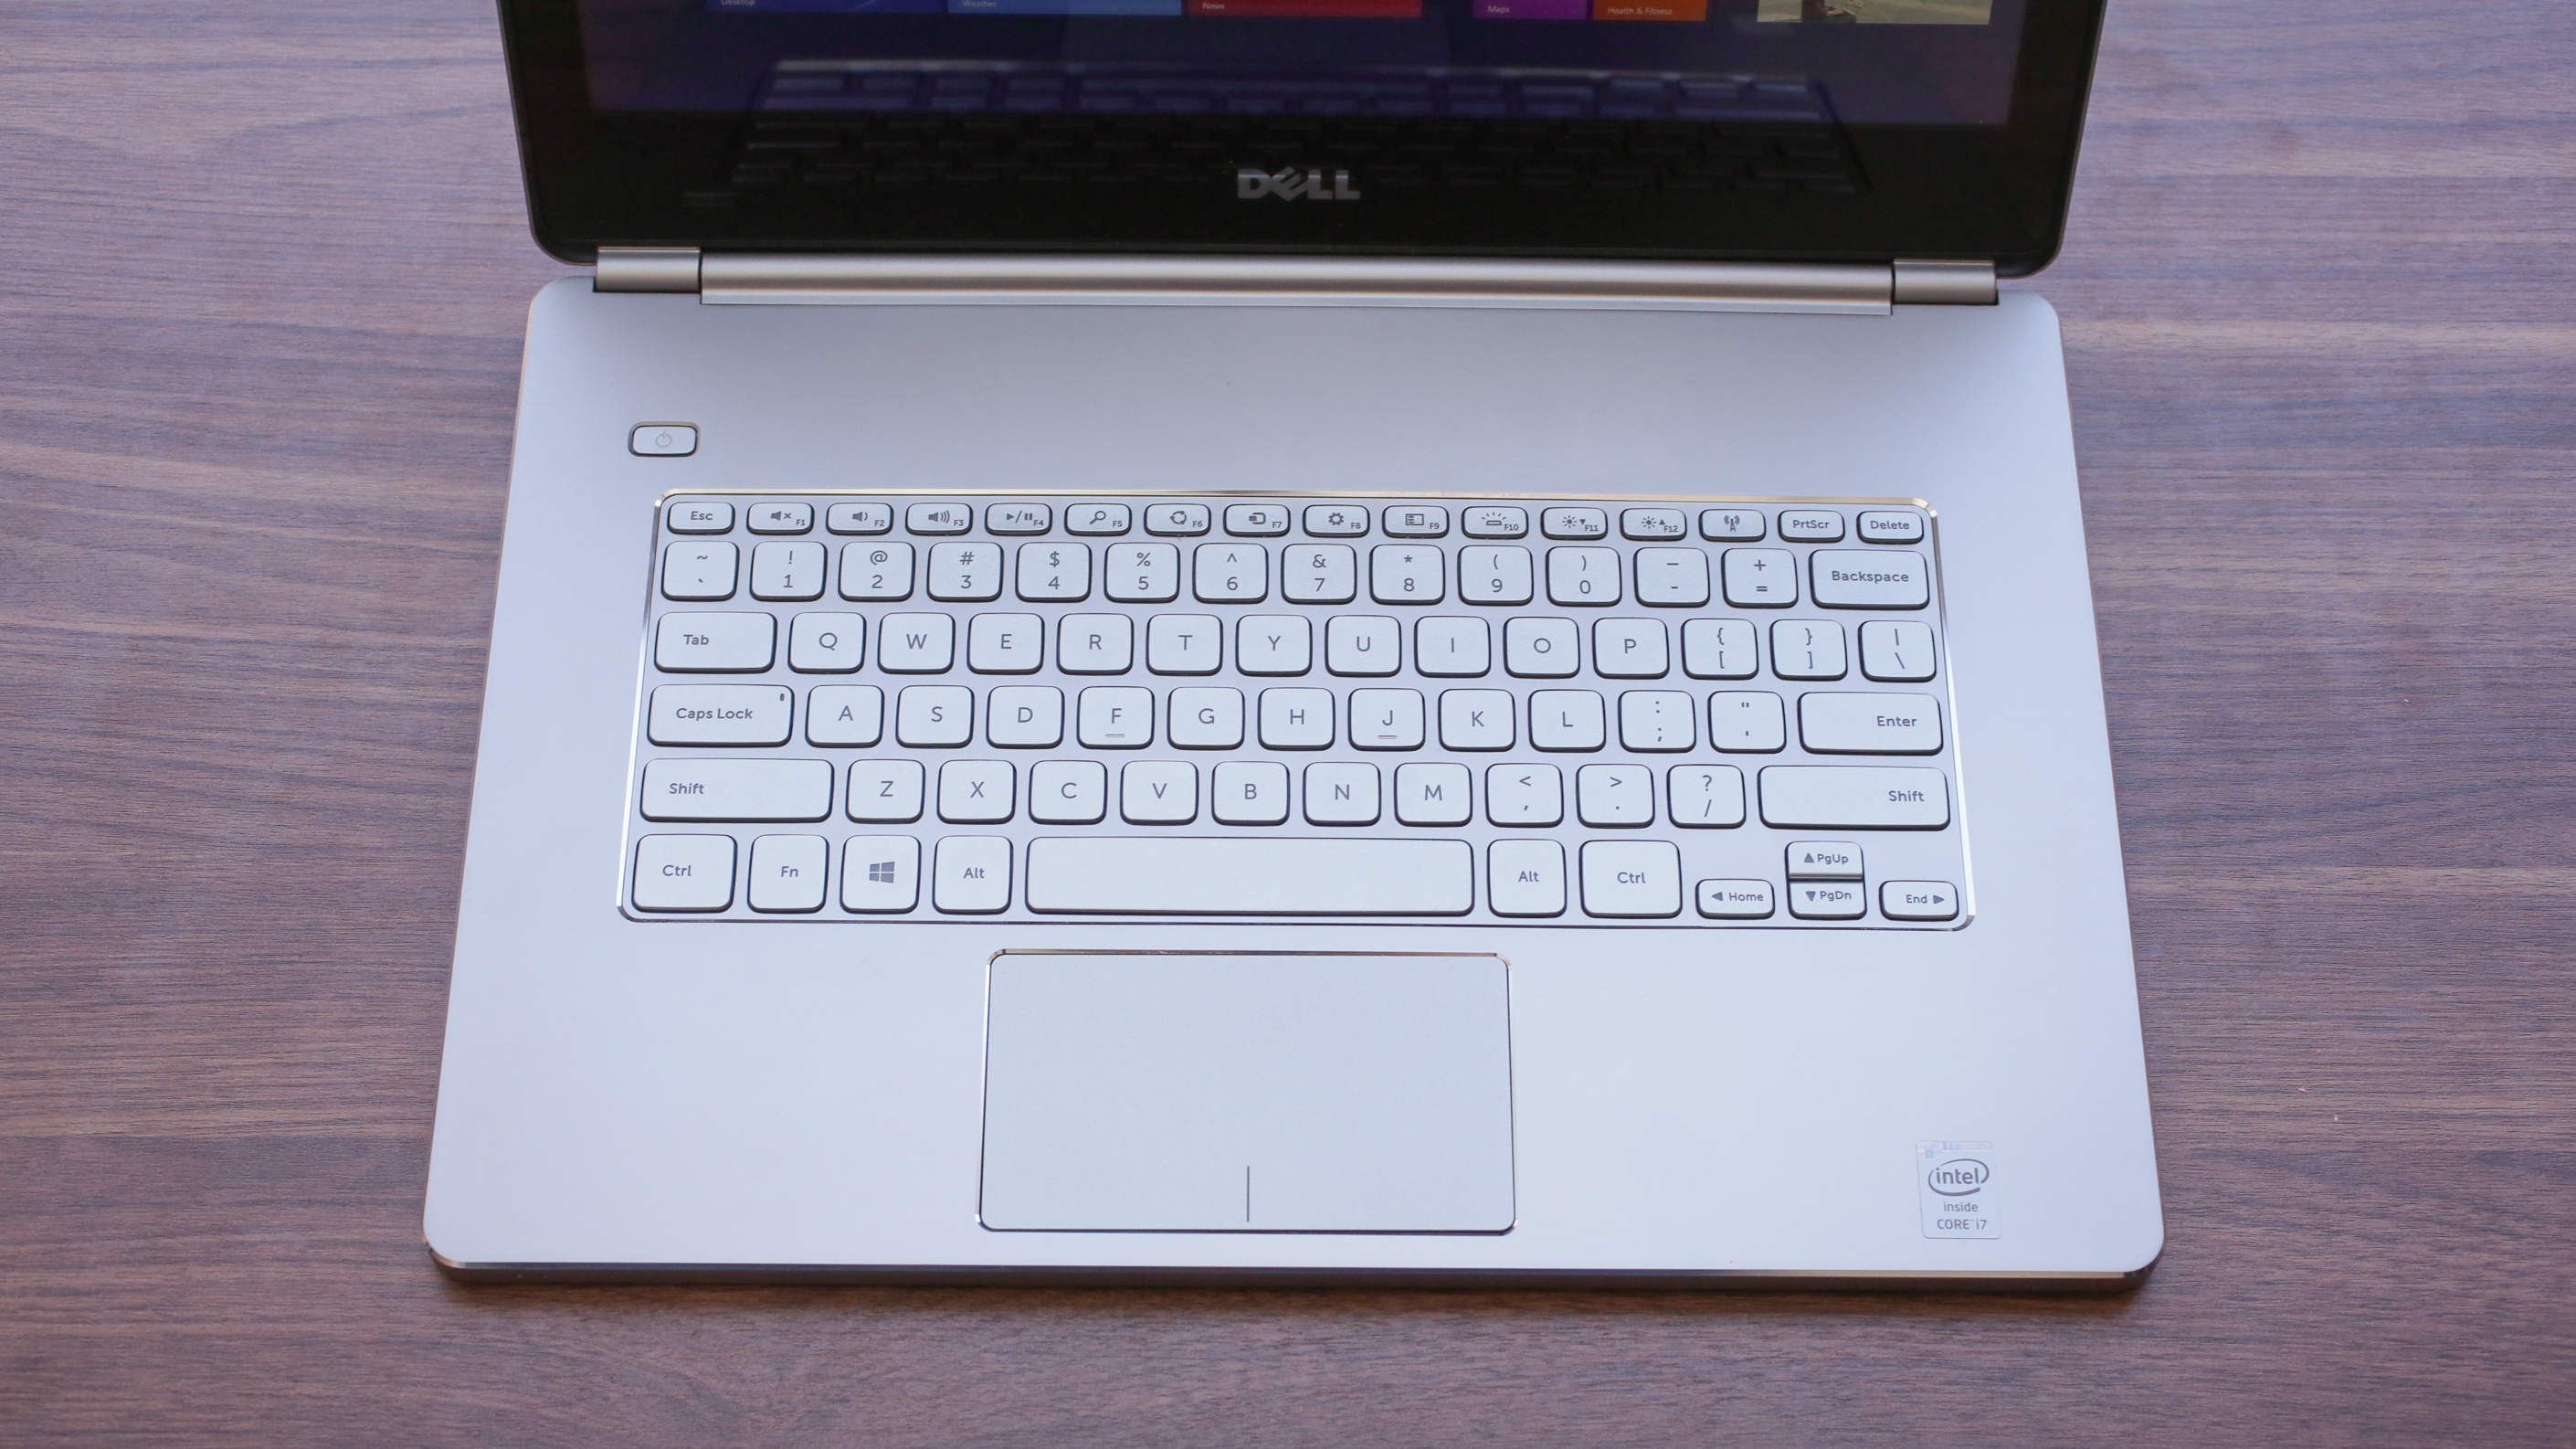 dell-inspiron-14-7000-series-product-photos06.jpg